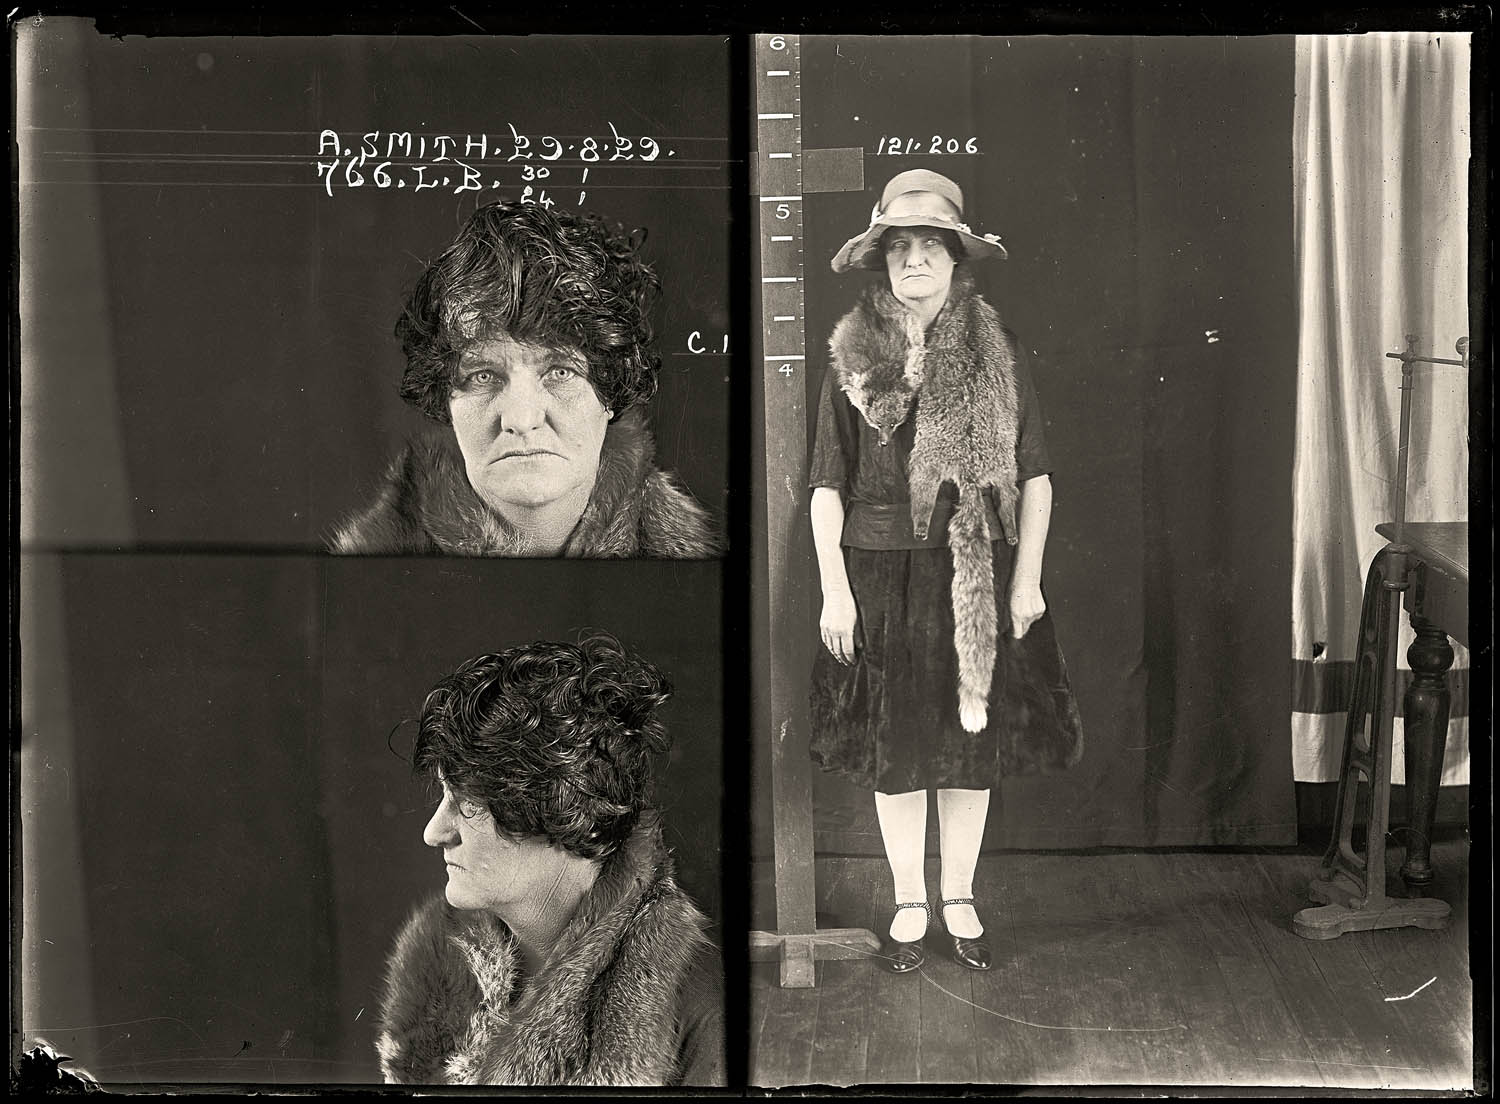 Alma Henrietta Agnes Smith, criminal record number 766LB, 29 August 1929. State Reformatory for Women, Long Bay, NSW